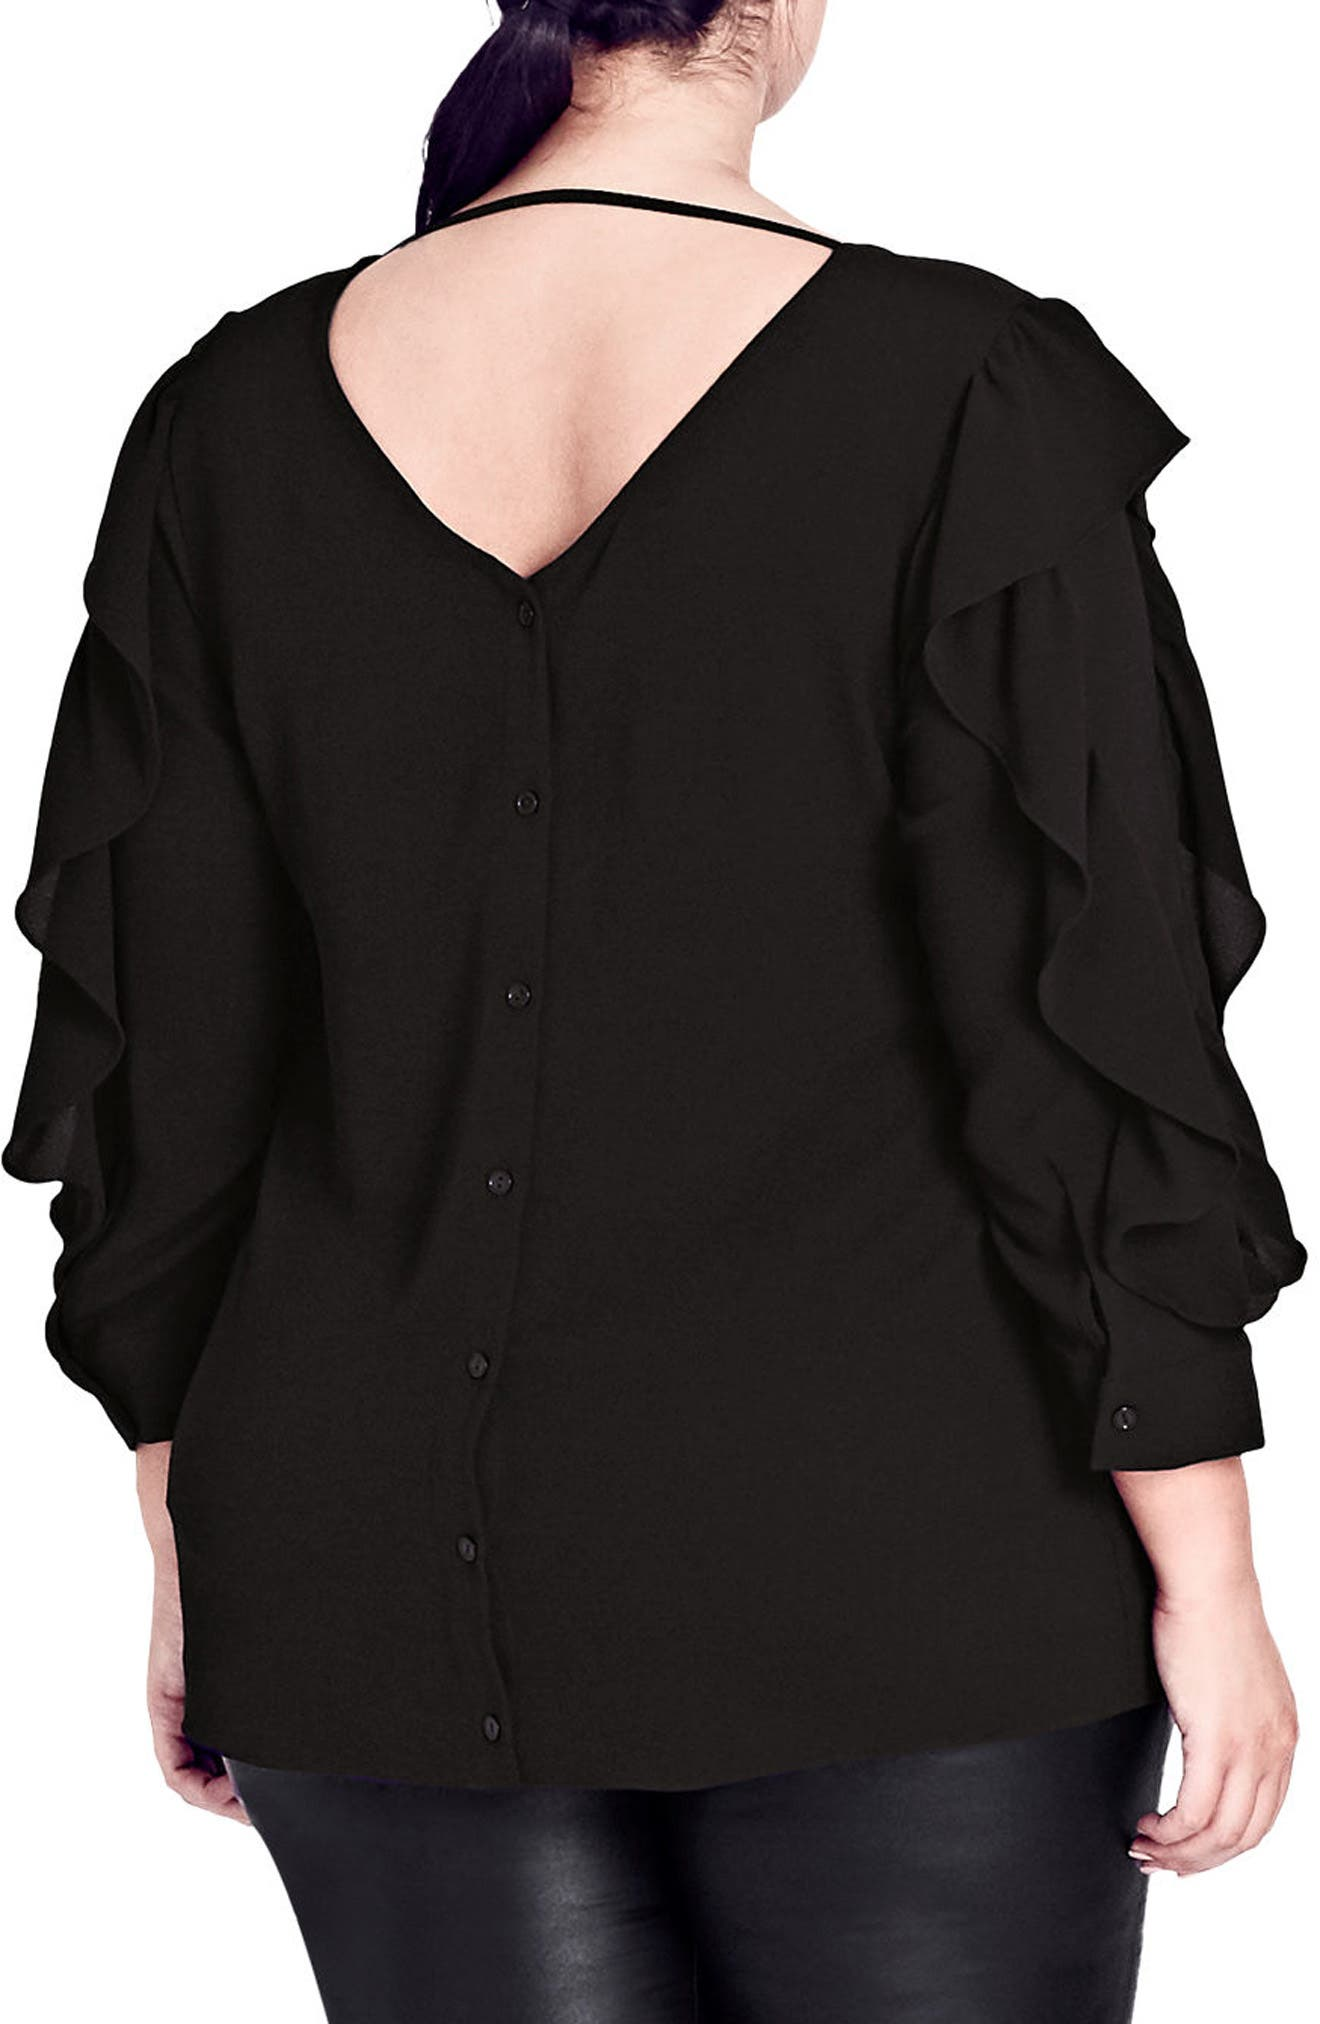 Ruffle Sleeve Button Back Shirt,                             Alternate thumbnail 2, color,                             Black